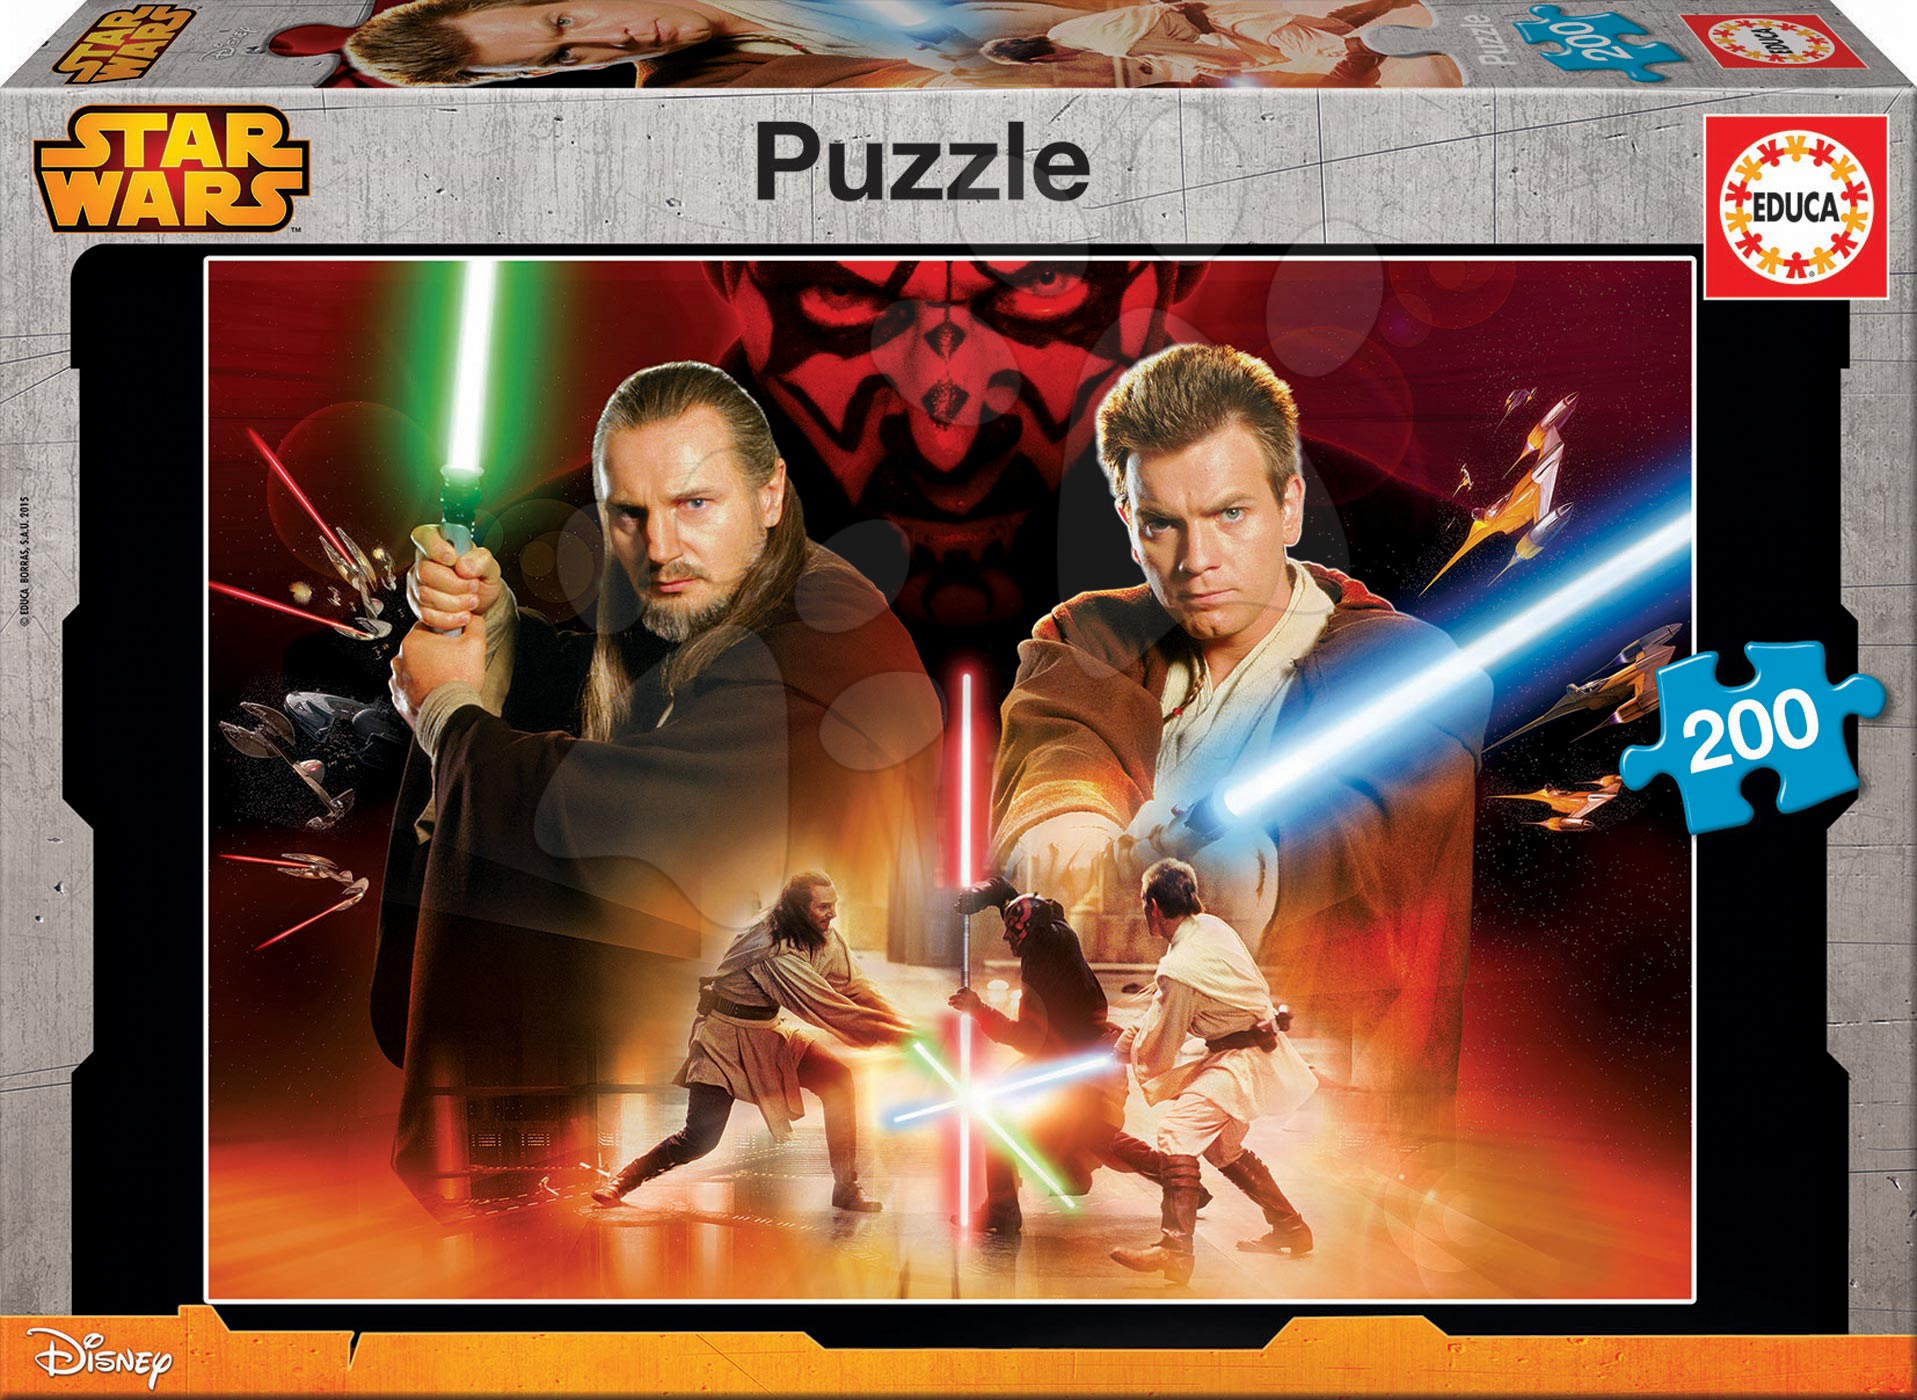 Puzzle Star Wars Educa 200 dílů od 6 let